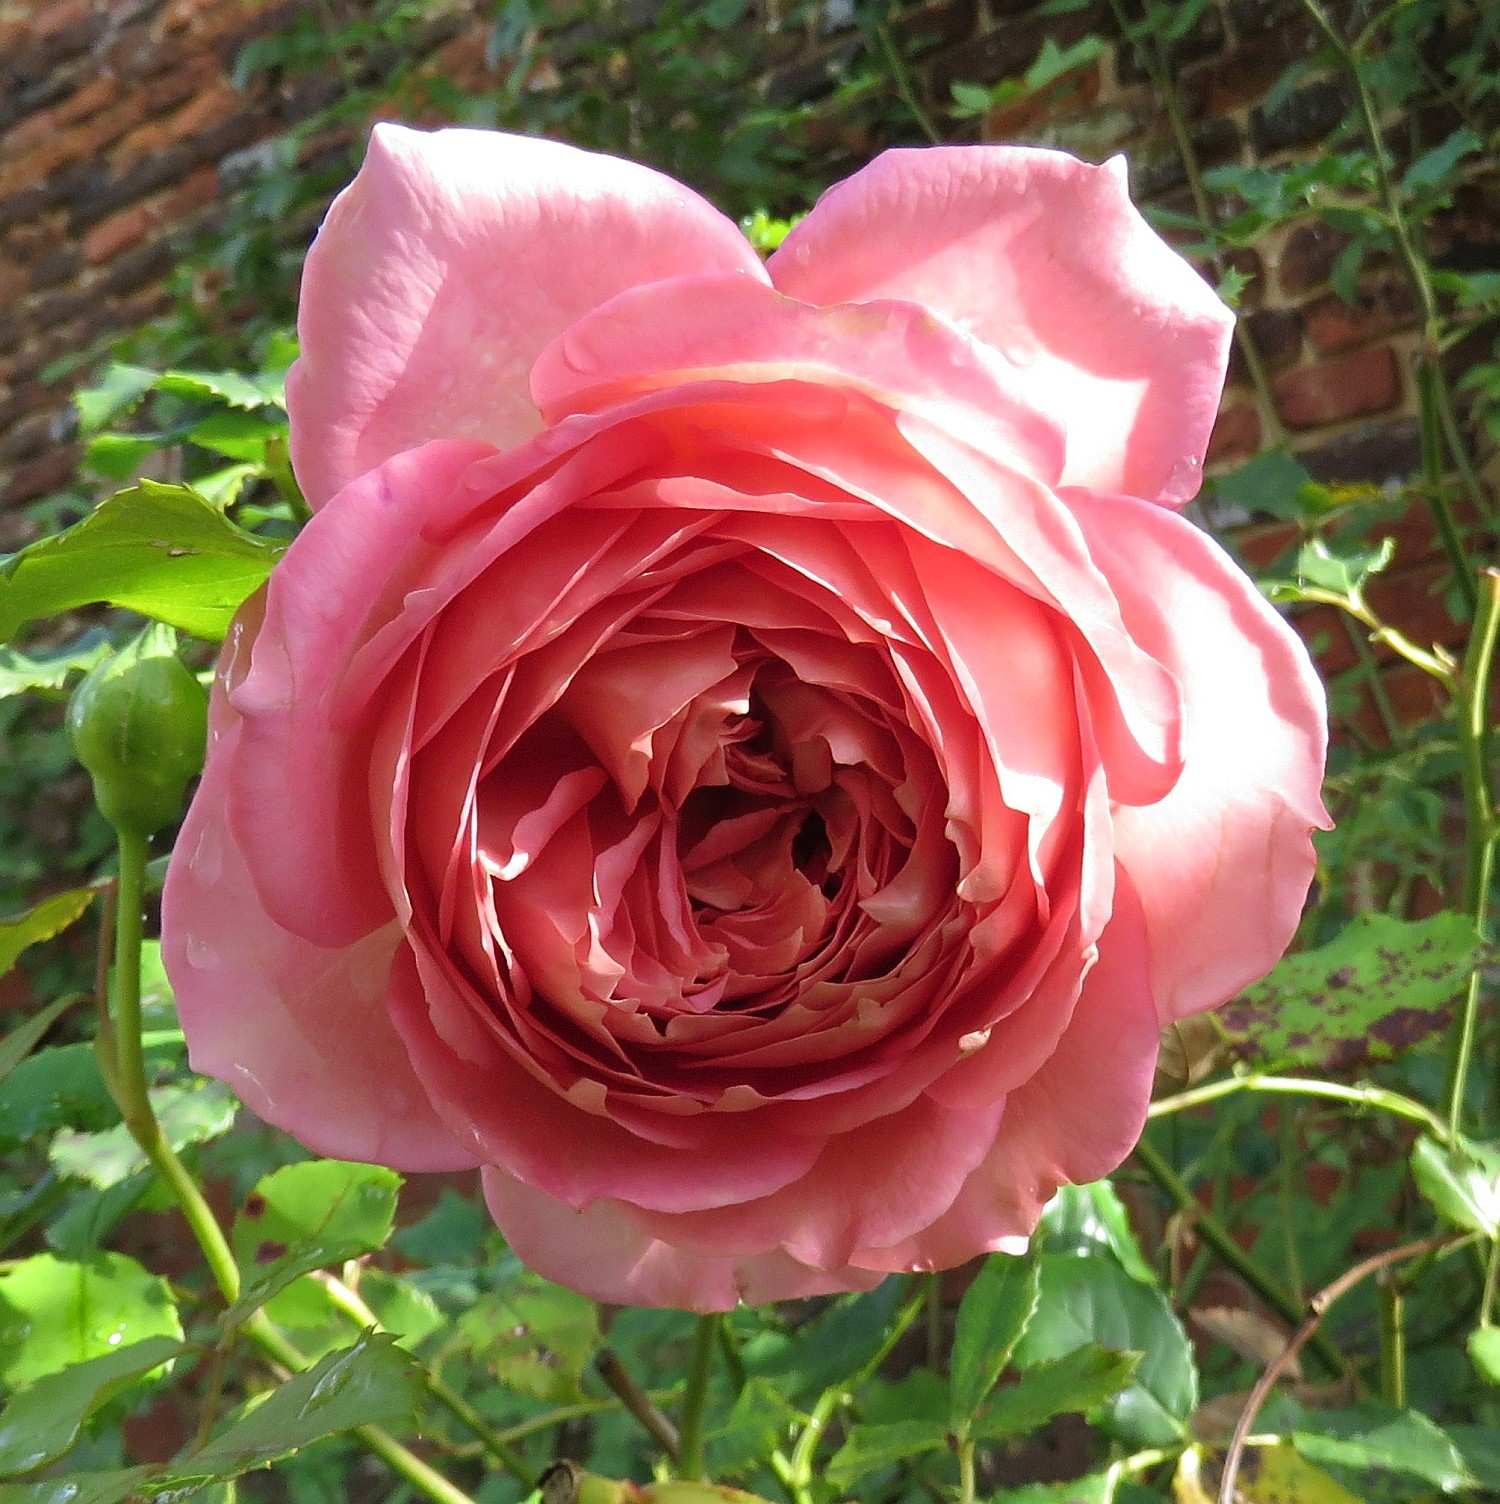 Alas, not a Tudor red rose, but a lovely pink with a hint of scent.